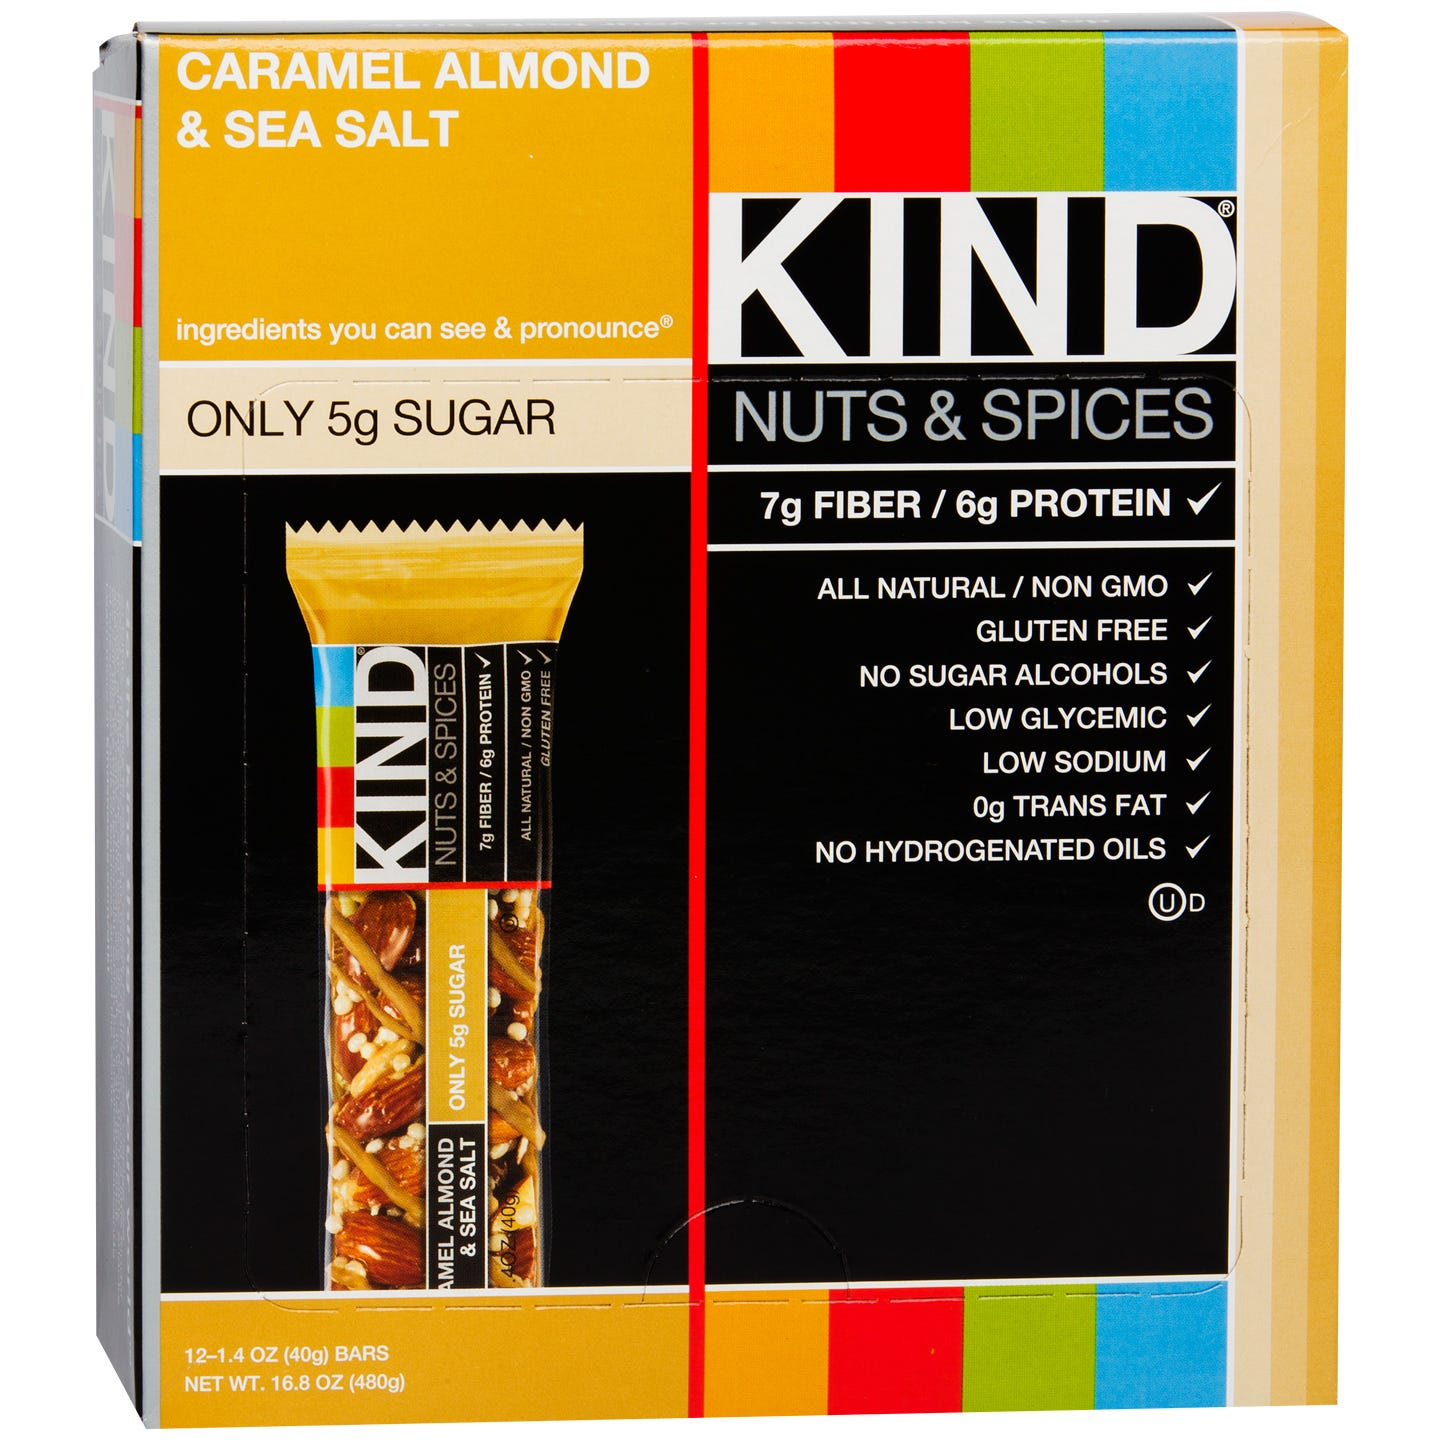 Kind Nuts & Spices Bar Caramel Almond & Sea Salt (12 ct) - Rapid Diet Weight Loss Products Shop